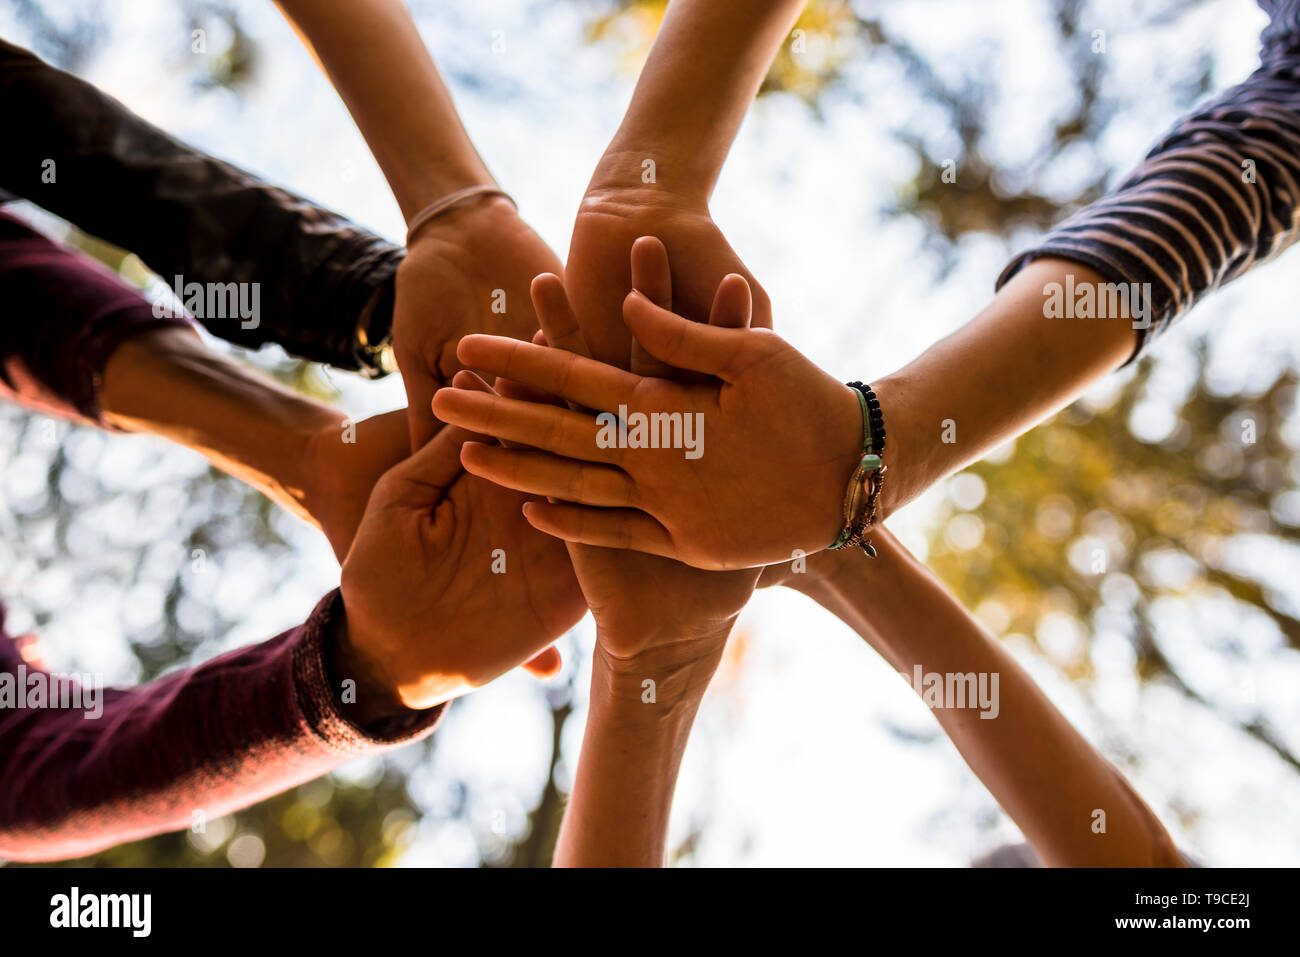 Shot from below of four people stacking hands outside in nature. Concept of unity, togetherness and friendship. - Stock Image